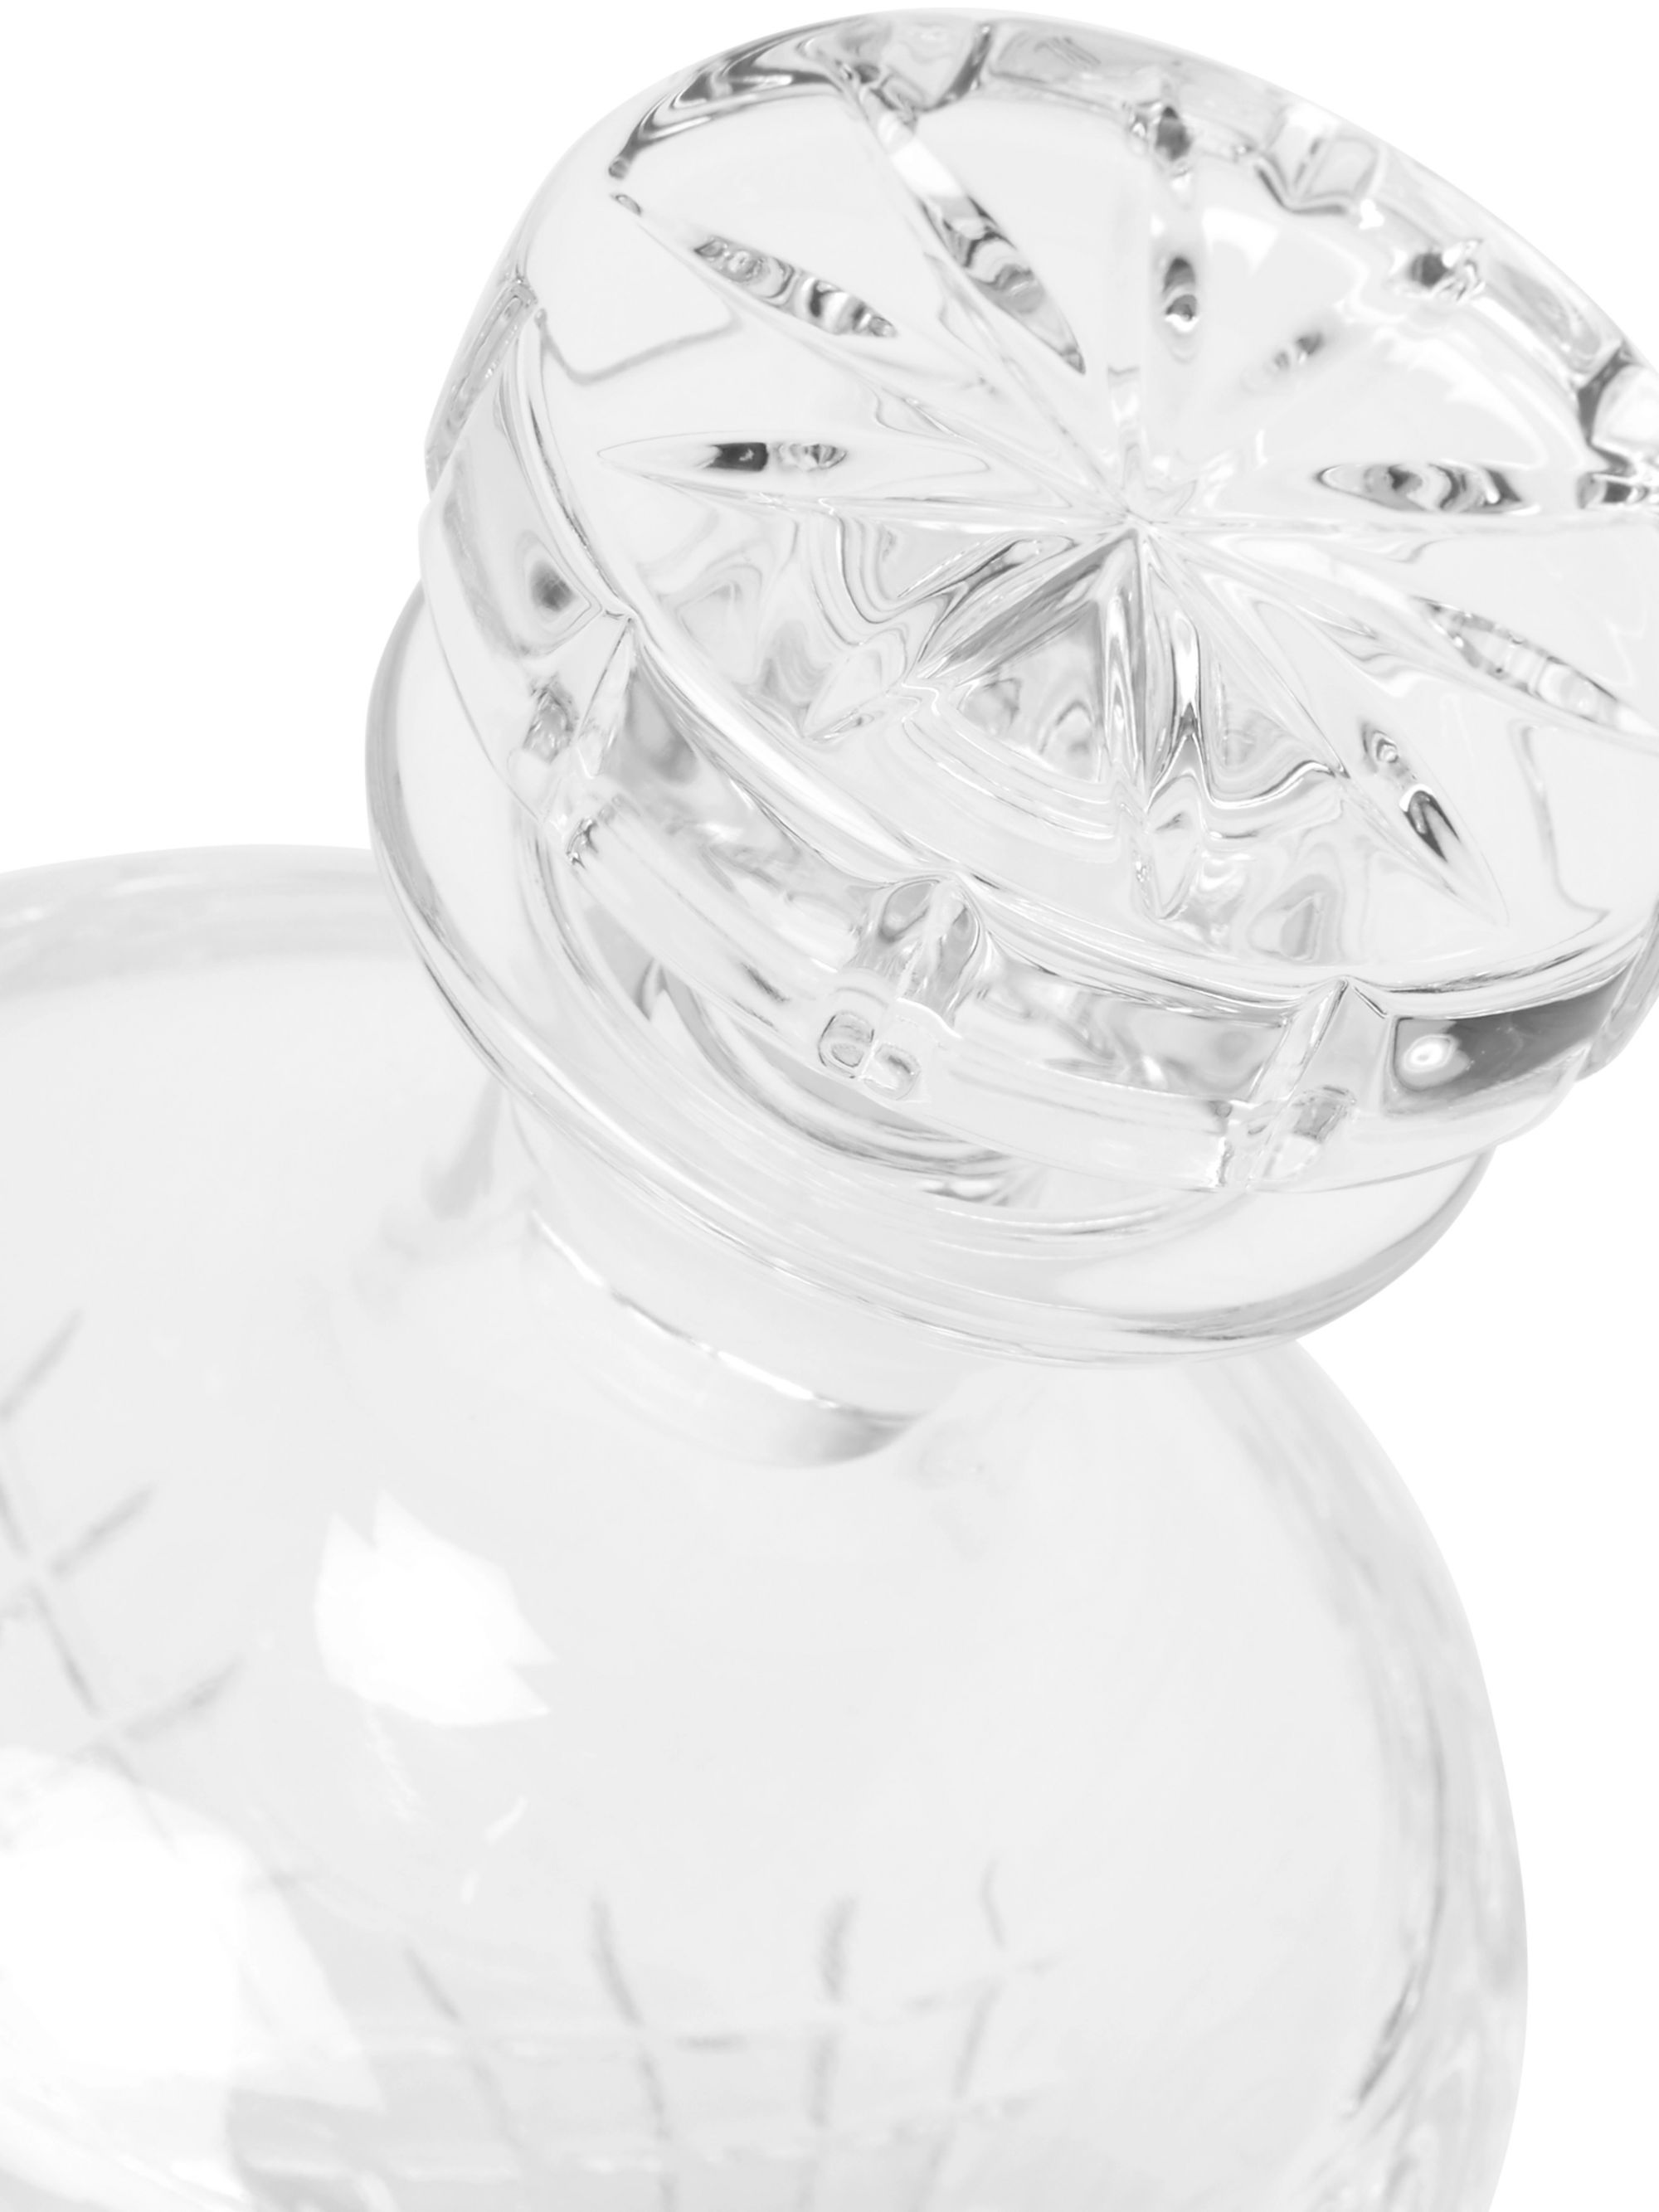 Soho Home Barwell Cut Crystal Decanter